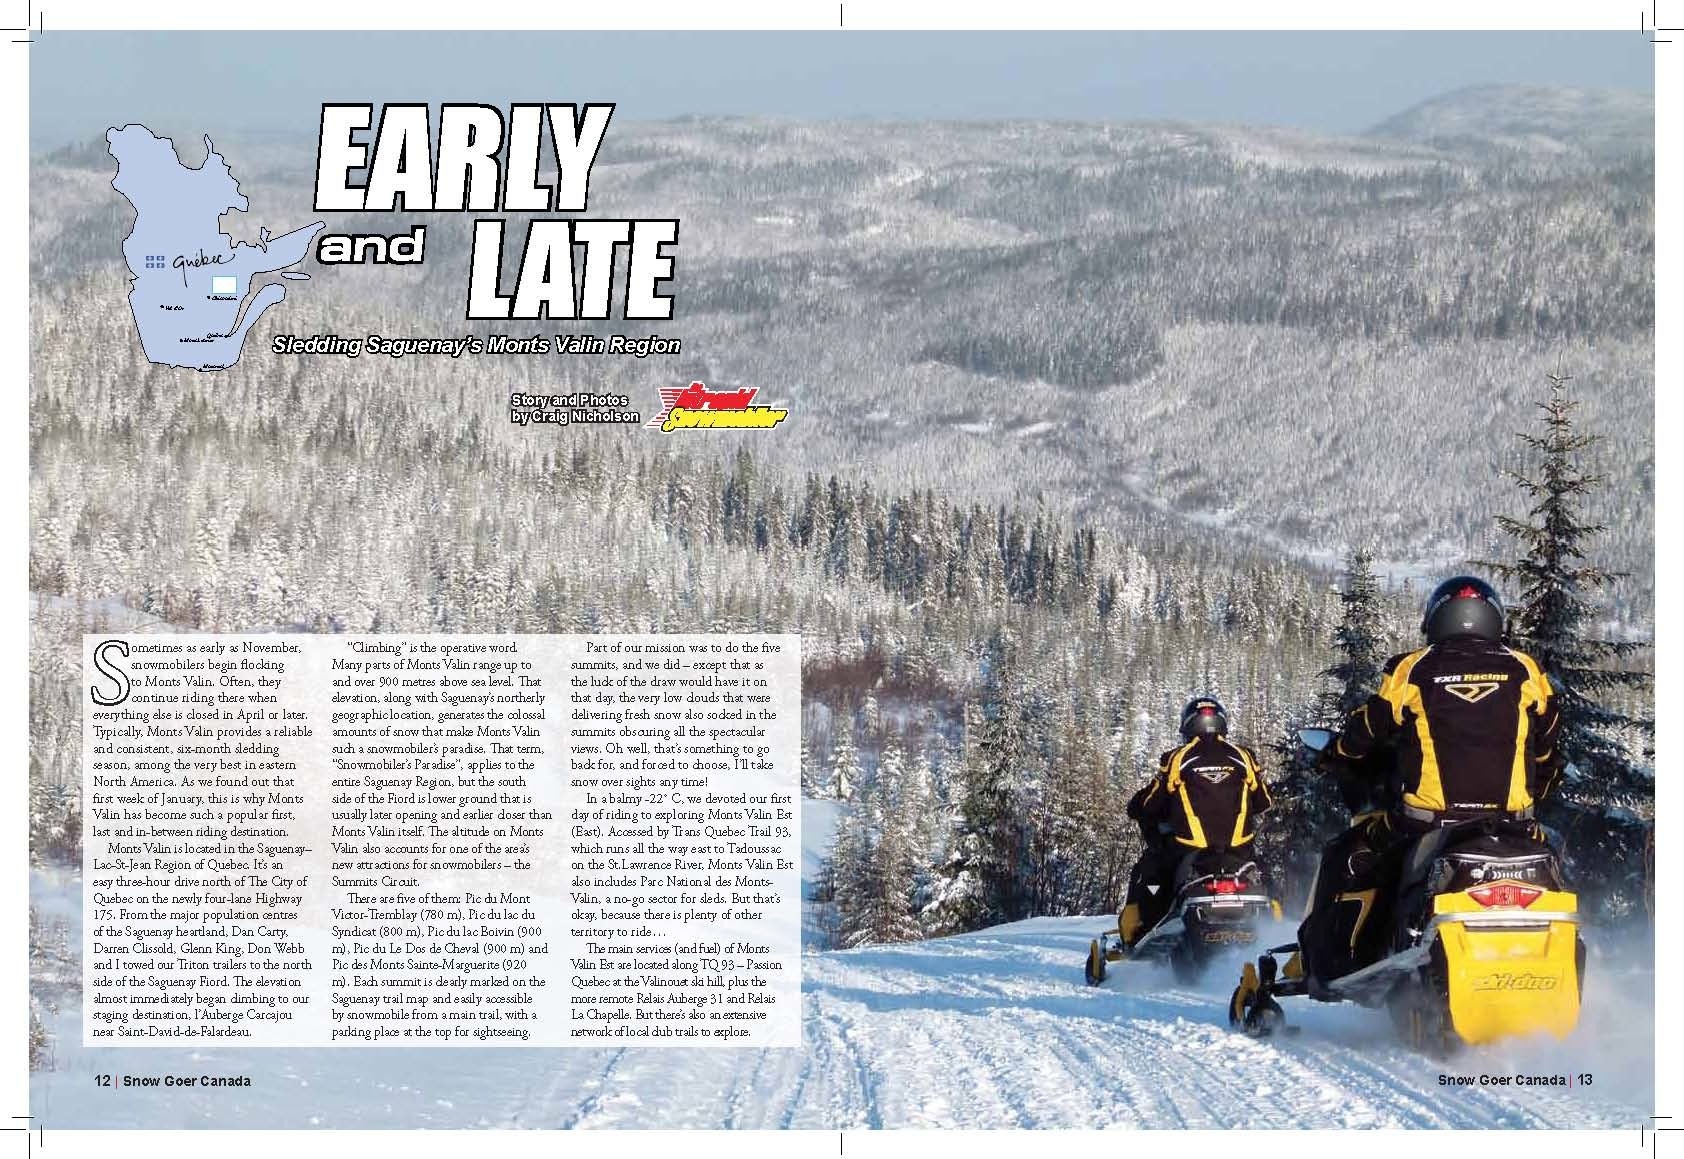 Read the Monts Valin Quebec tour article